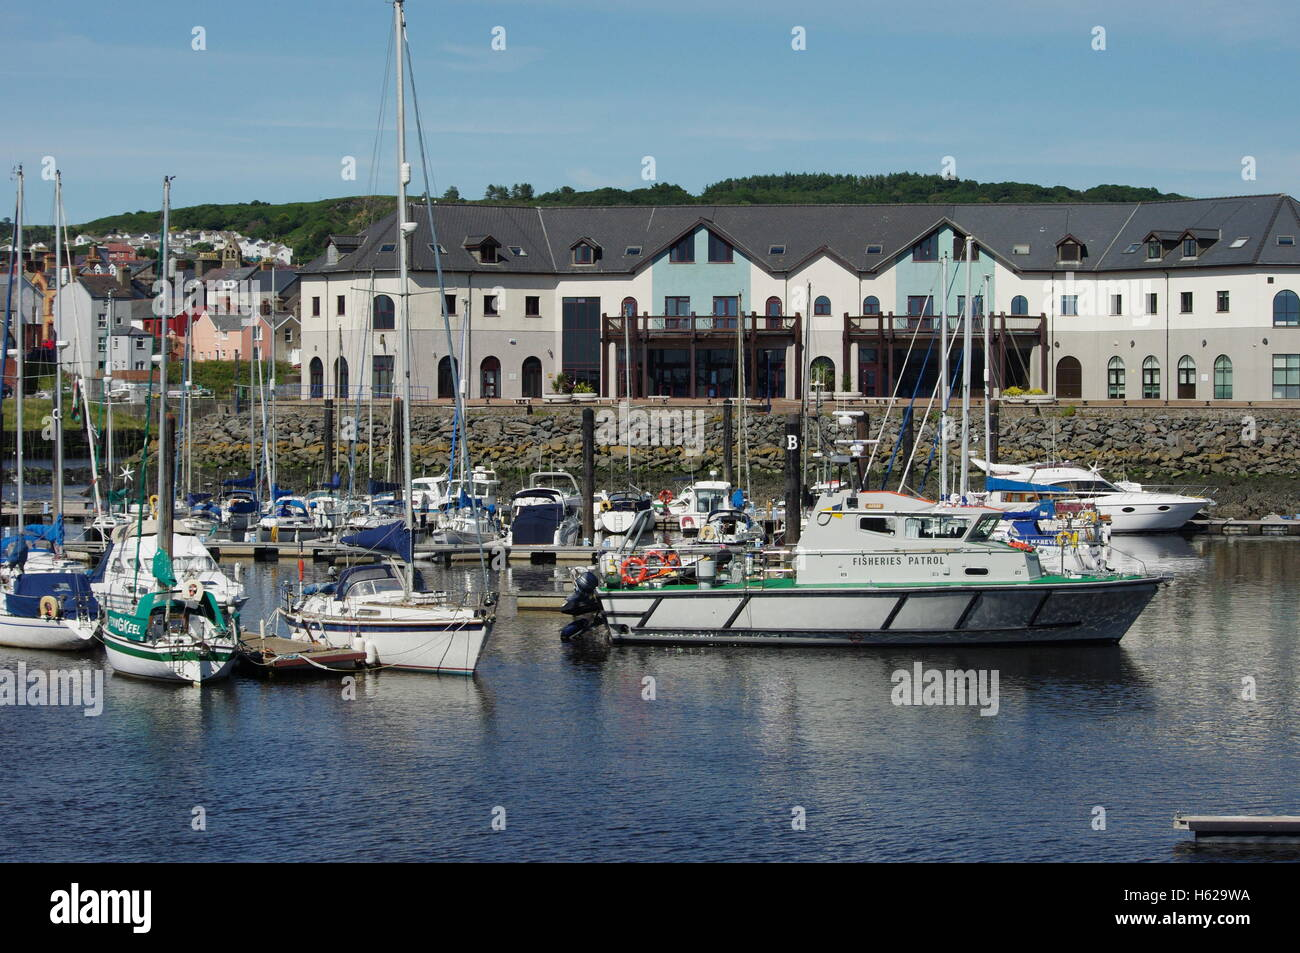 View overlooking the boats Aberystwyth Harbour / Marina facing towards Y Lanfa, Trefechen. - Stock Image